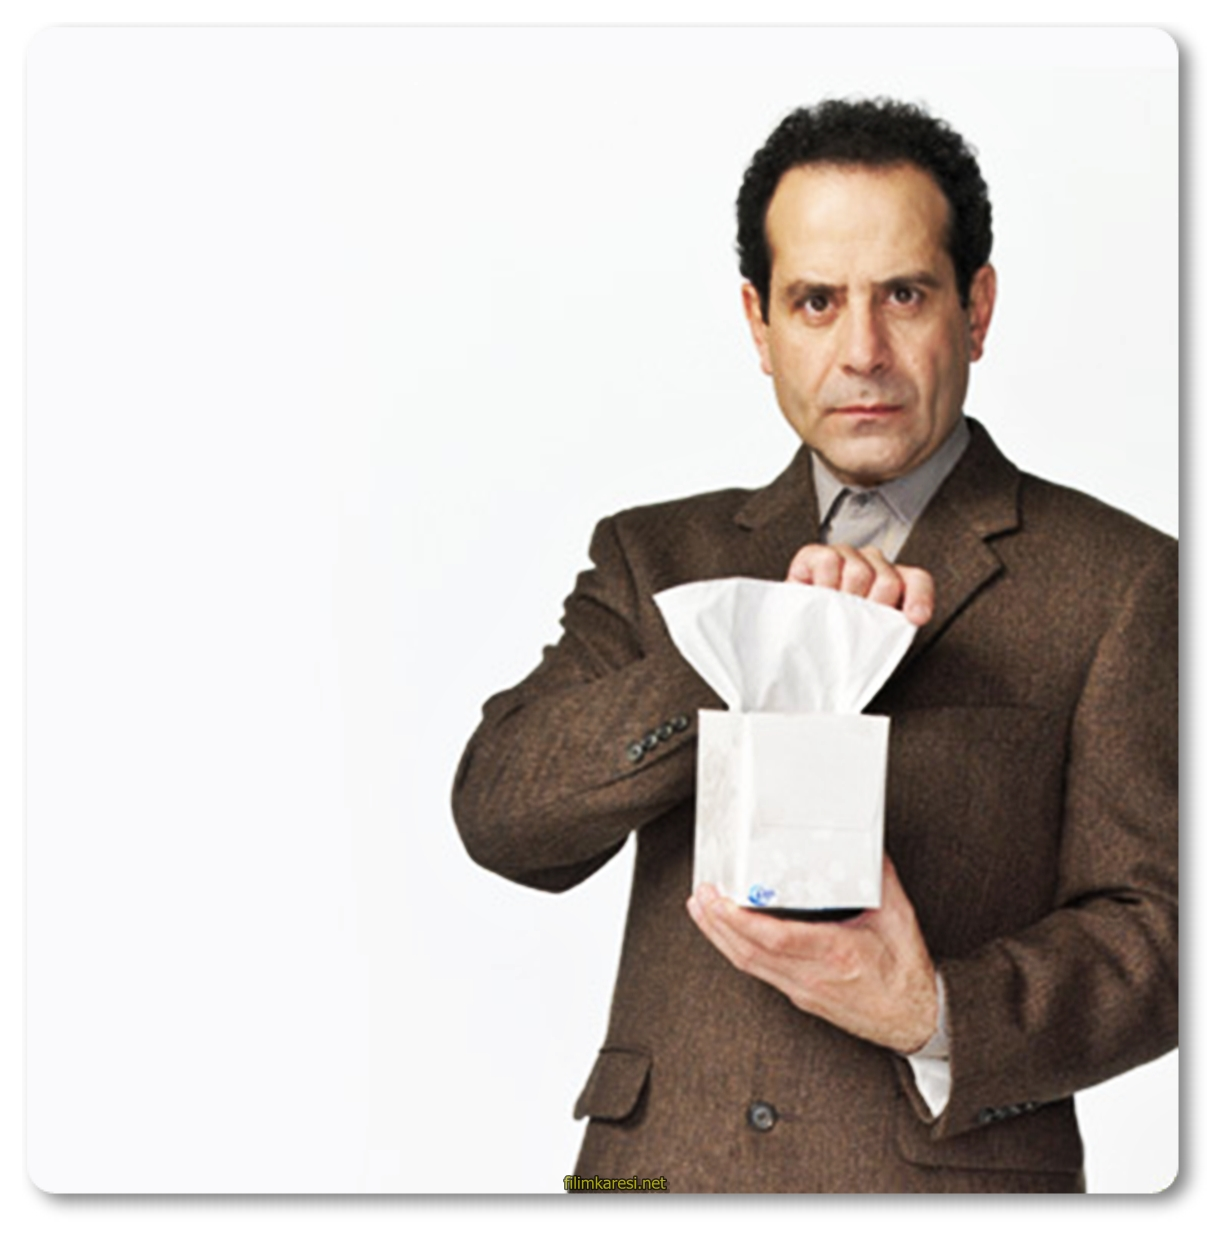 psychology adrian monk and ocd Tony shalhoub - ocd has never been the same since tony inhabited the role of adrian monk.